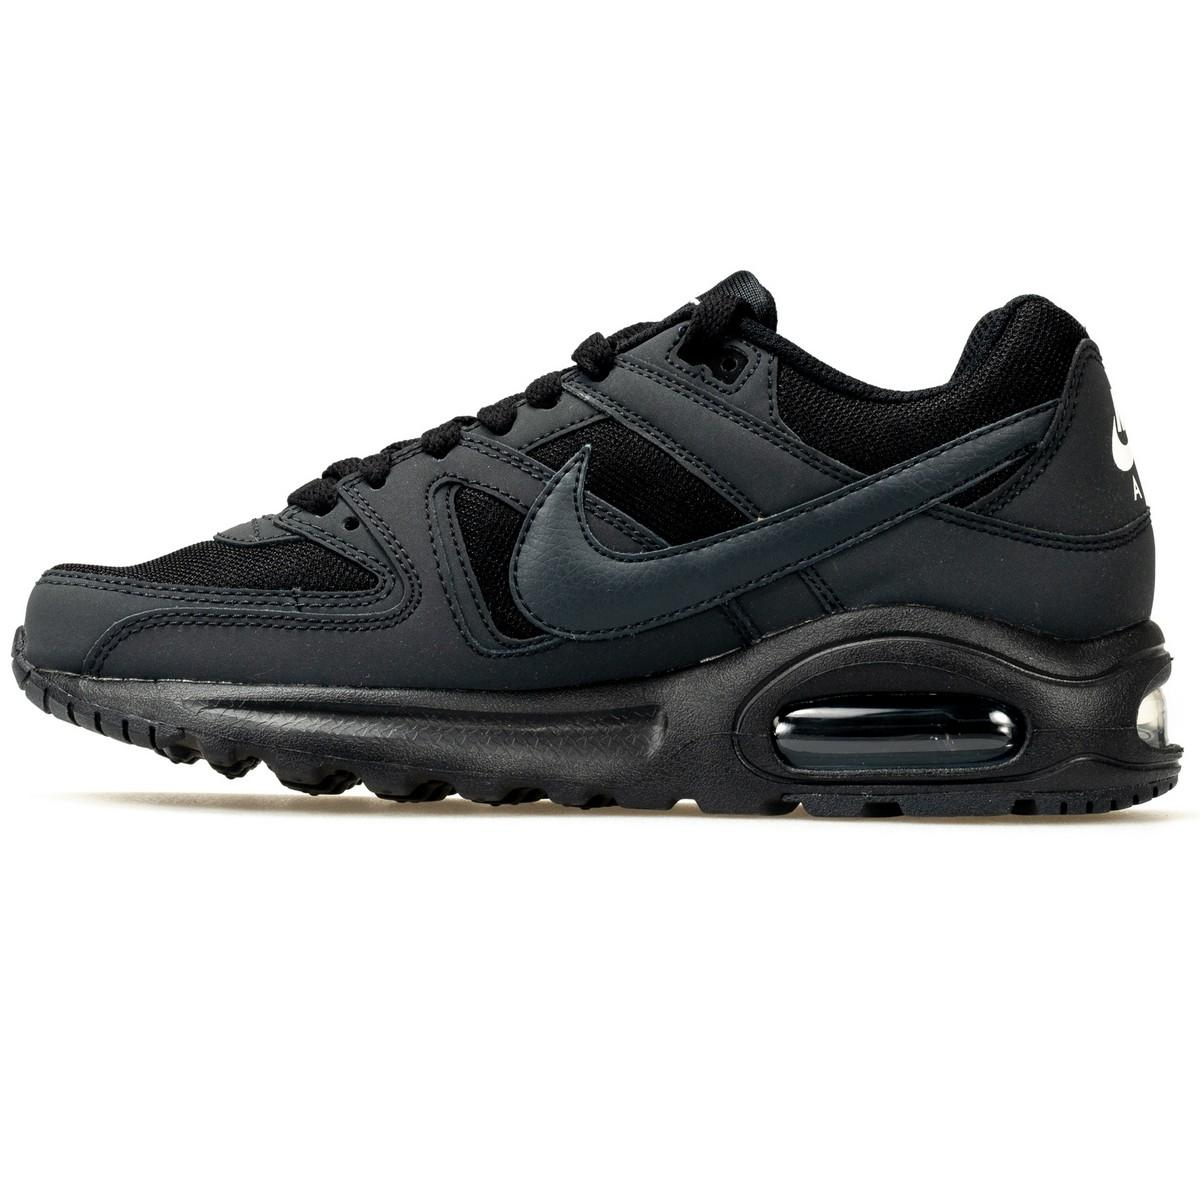 Max Flex Nike Scarpa Air gs 844346 002 Black Command Uomo x1X16nt